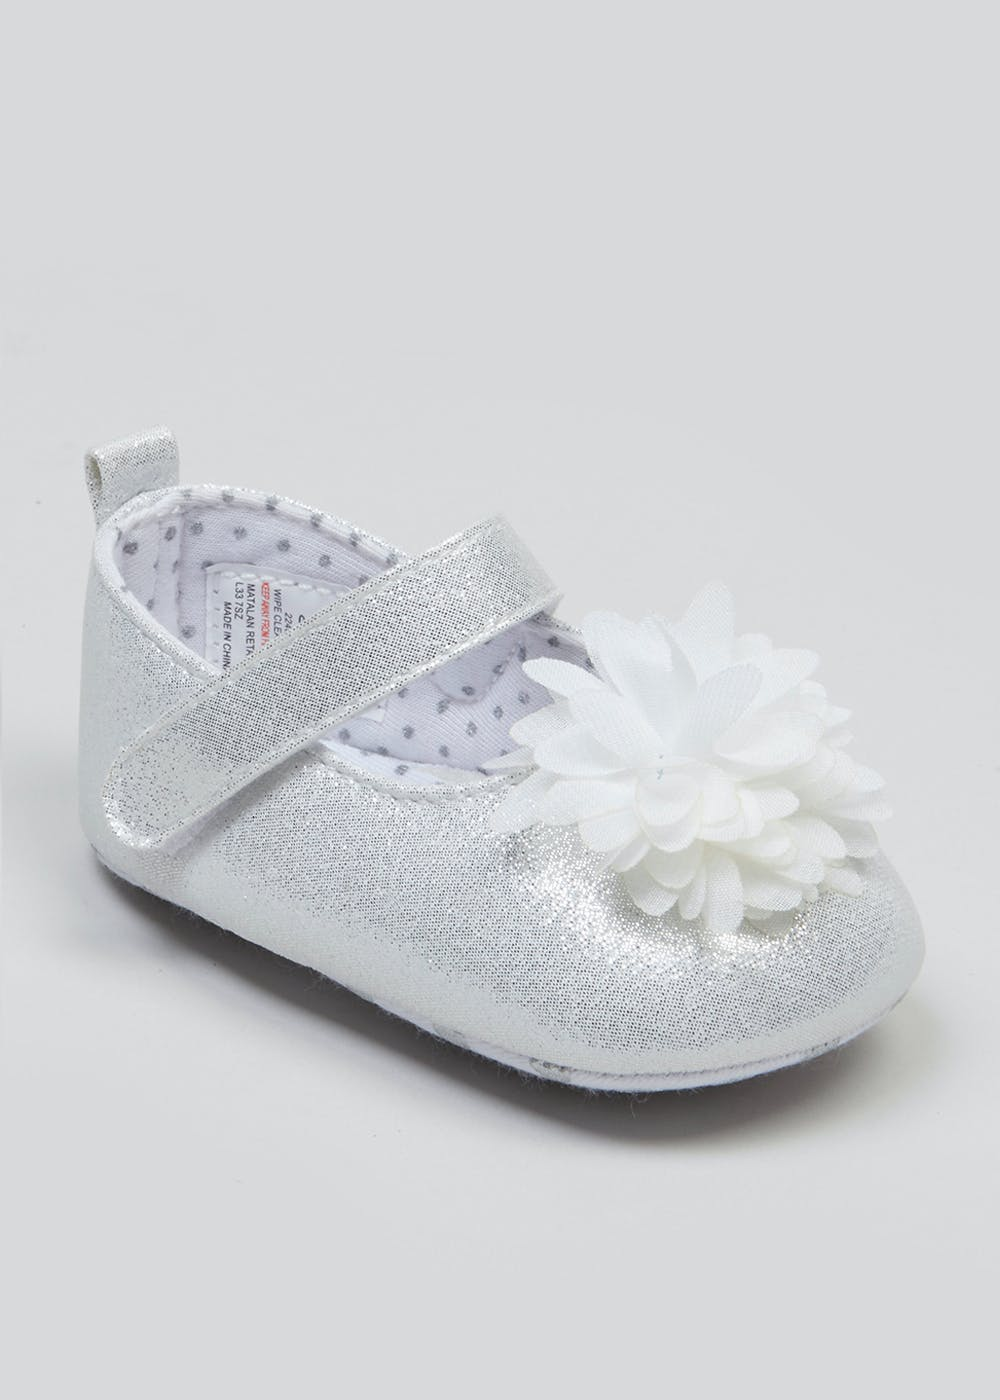 c102cfca2b53e Girls Soft Sole Occasion Baby Shoes (Newborn-18mths)